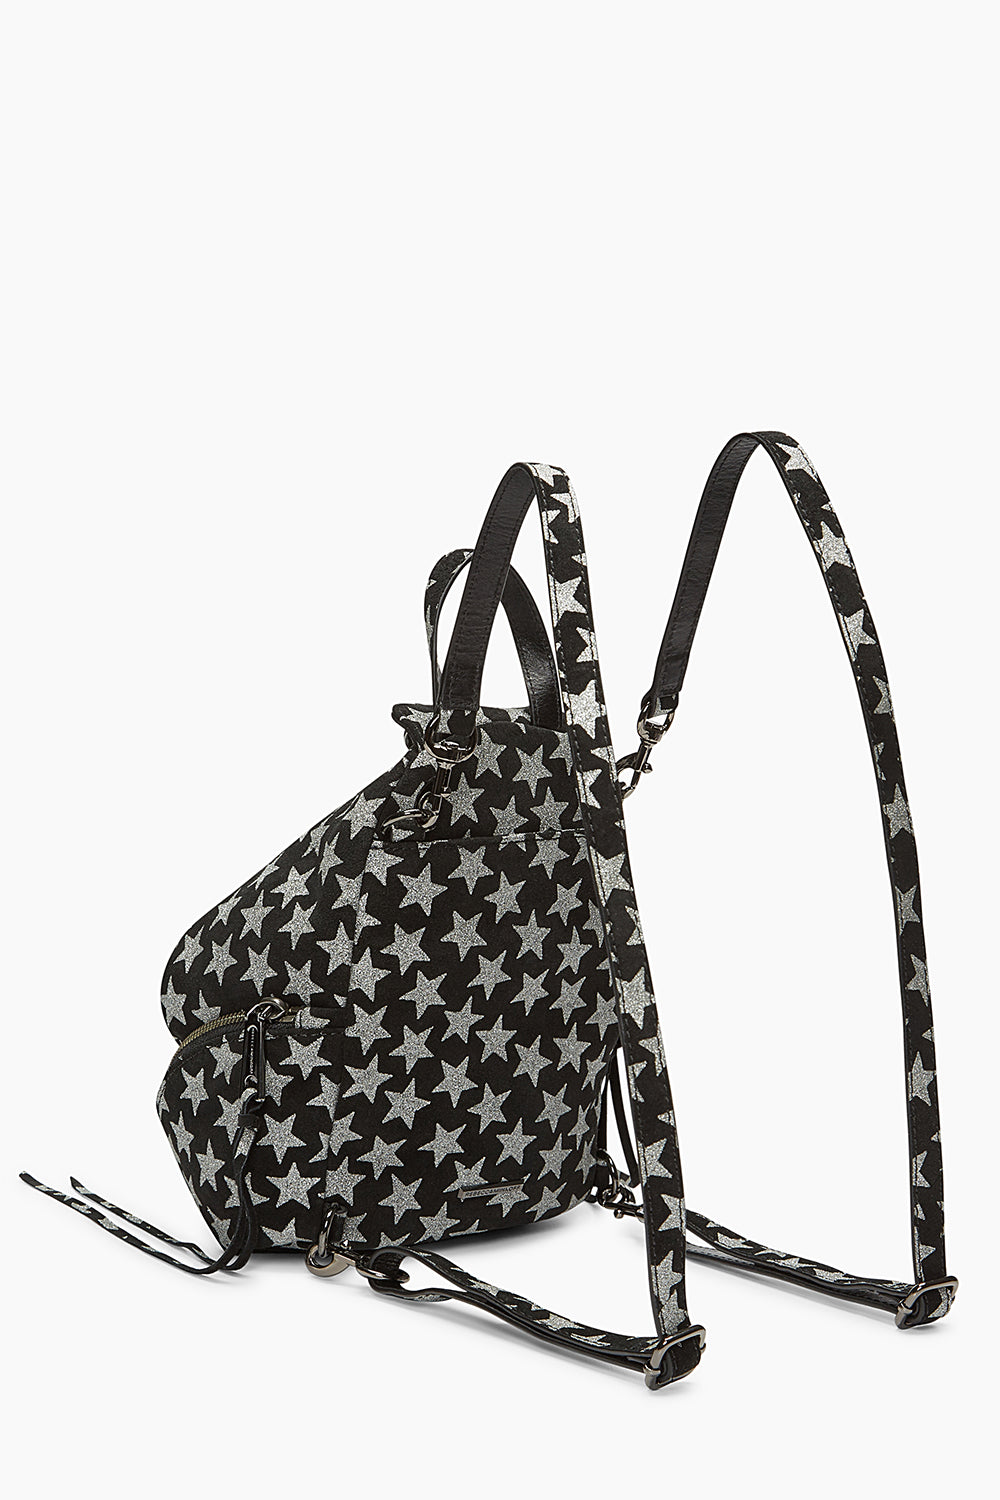 Sale Hot Sale Extremely Cheap Online Rebecca Minkoff mini Julian star convertible backpack High Quality Sale Online Buy Cheap 100% Guaranteed T9r9tN4r